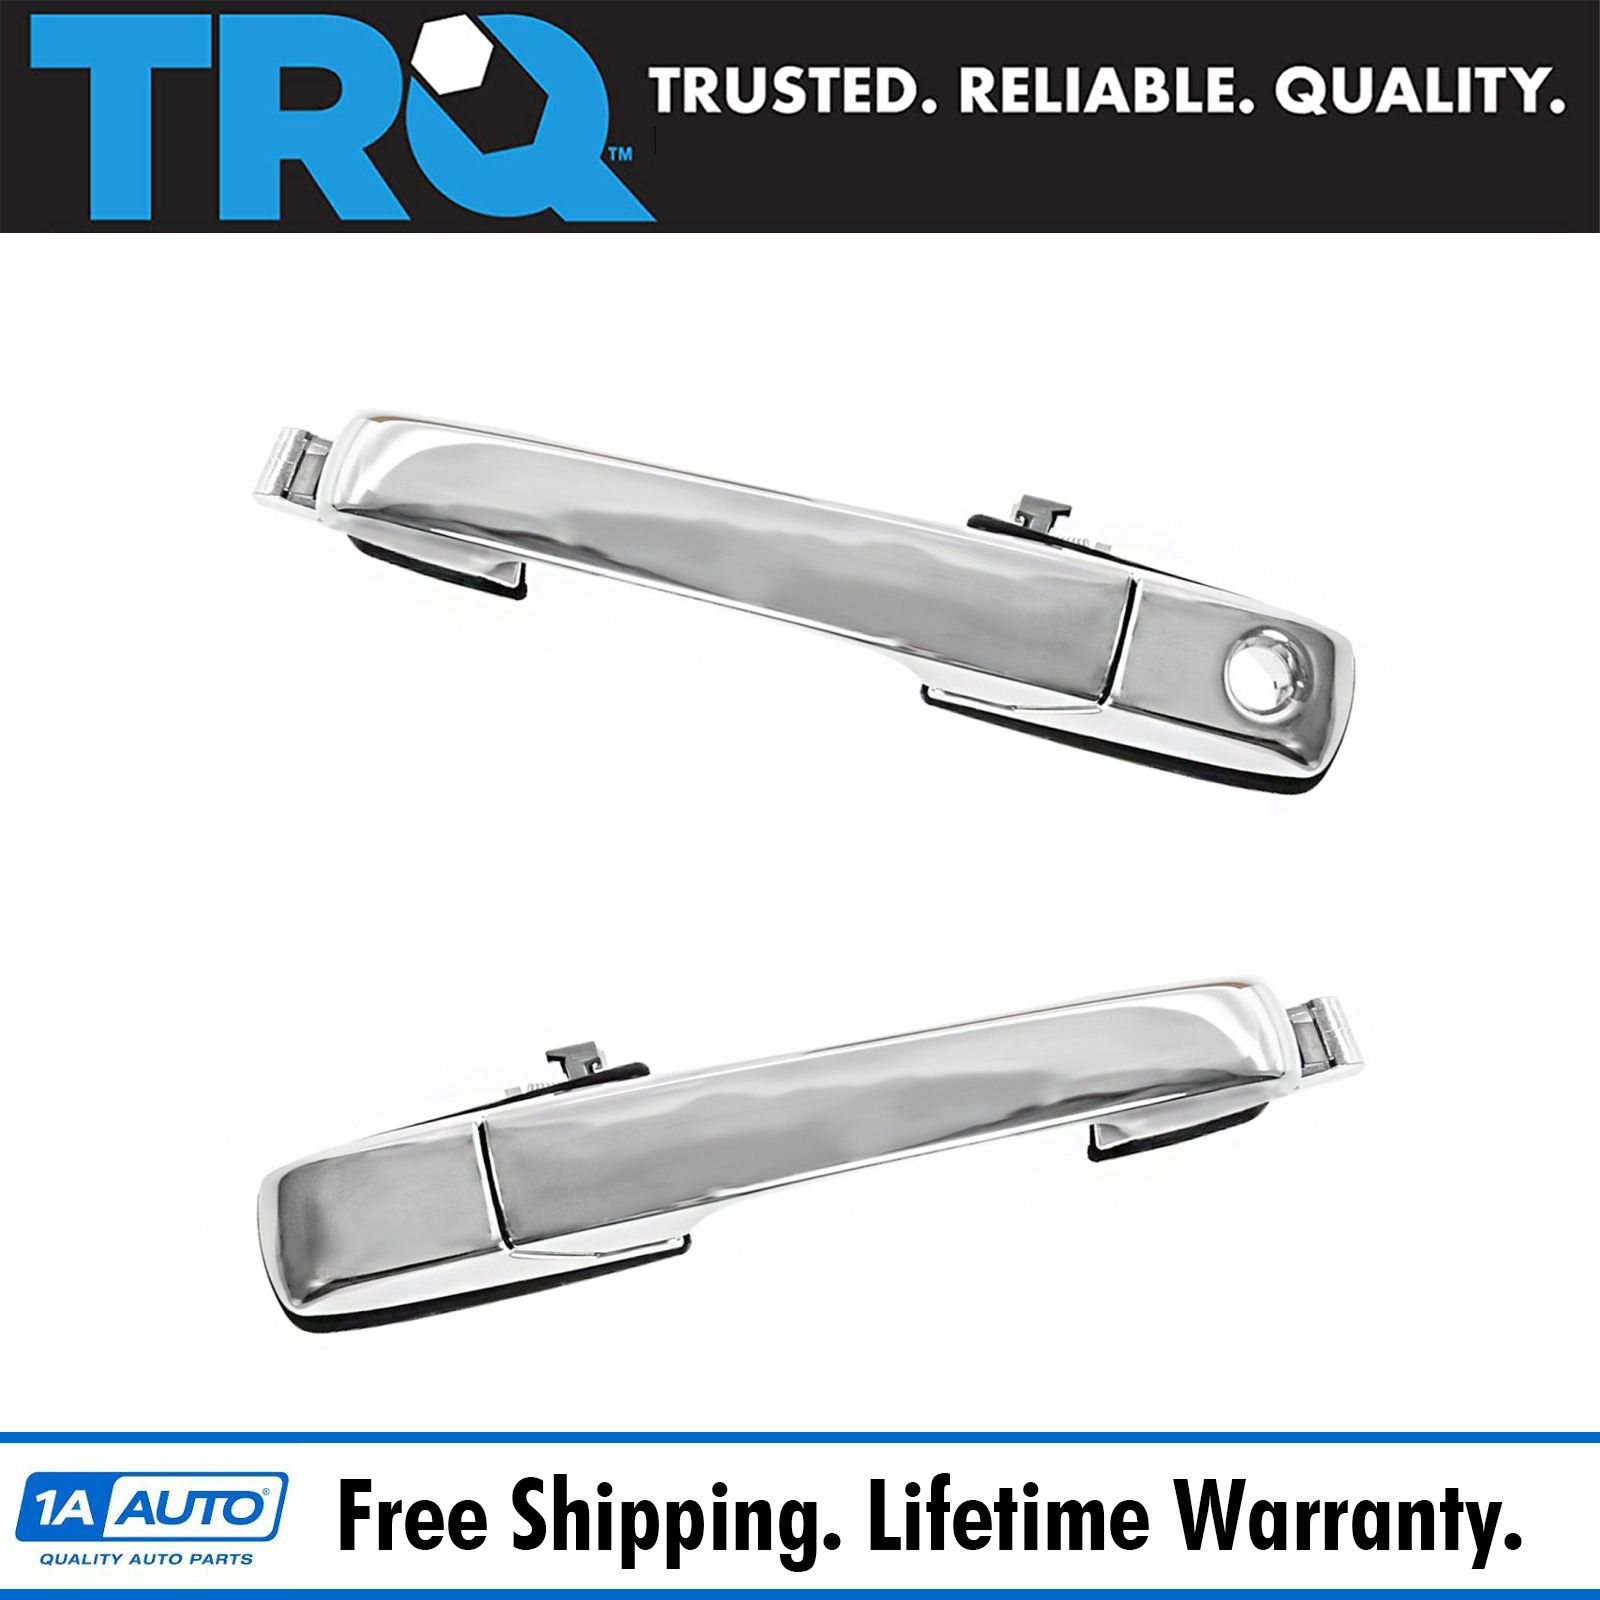 FOR 2001-06 ACURA MDX NEW Chrome Exterior Outside Door Handle LH REAR